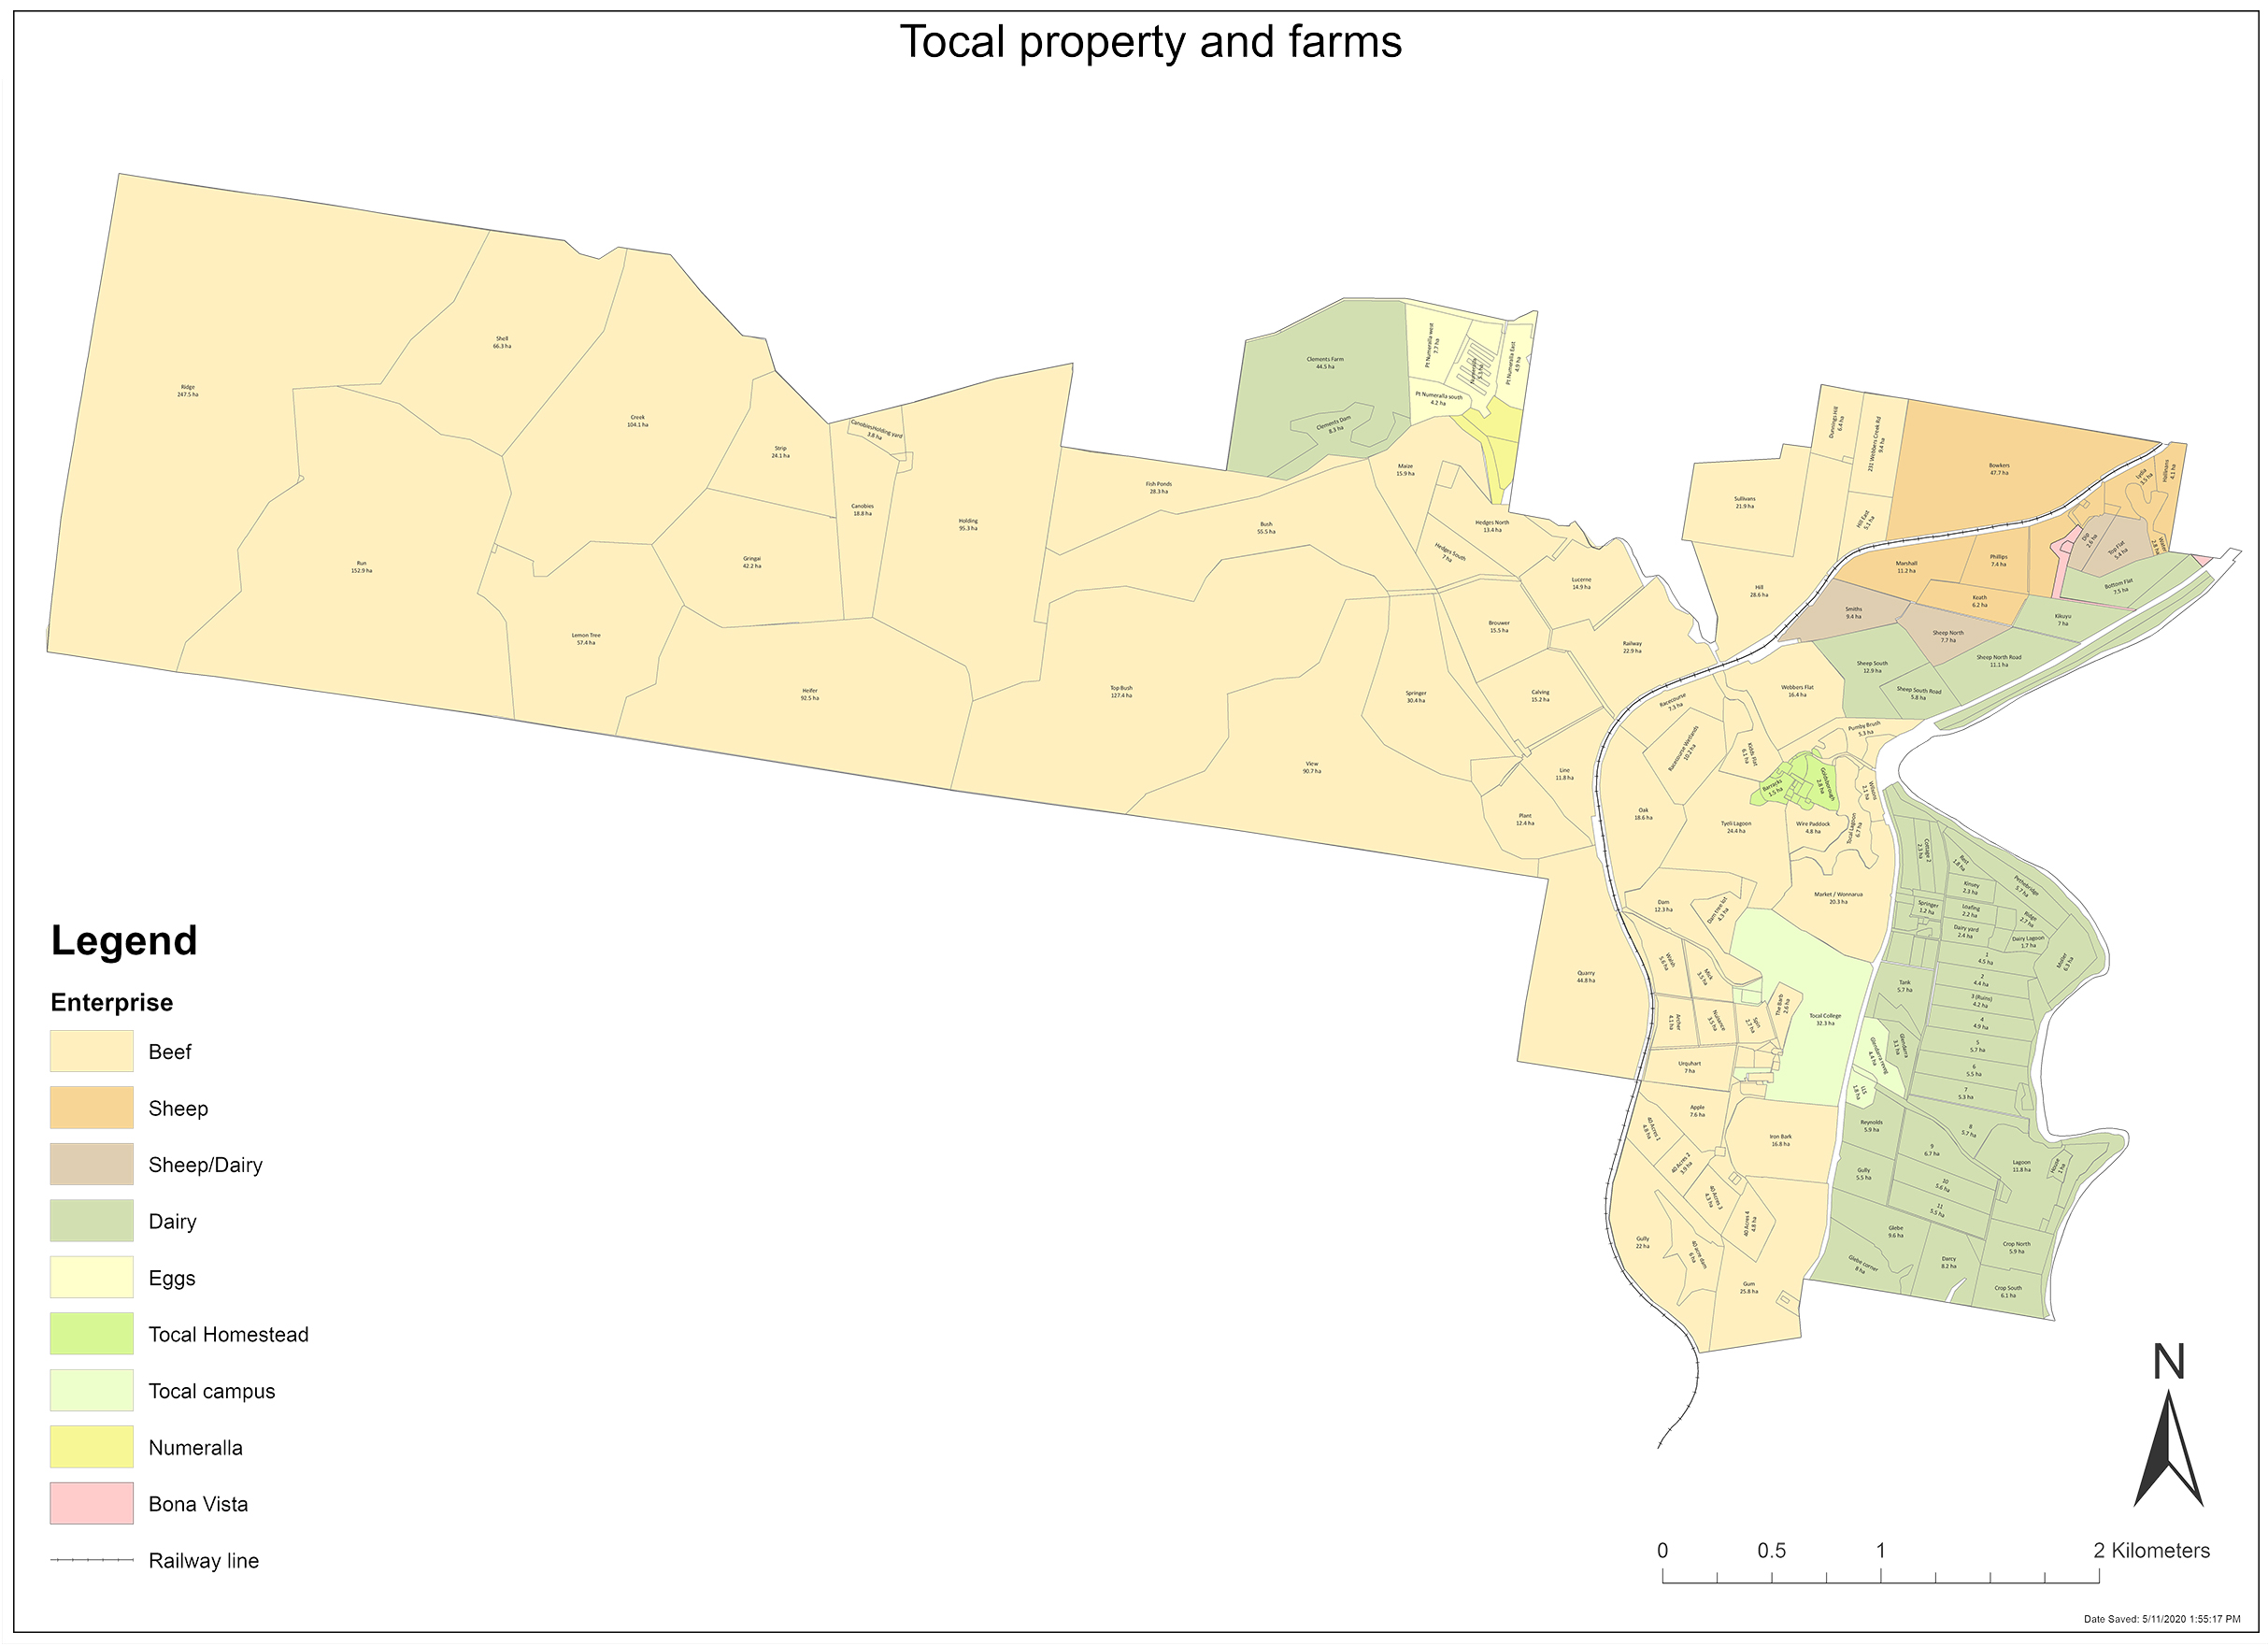 Tocal Property map 2021